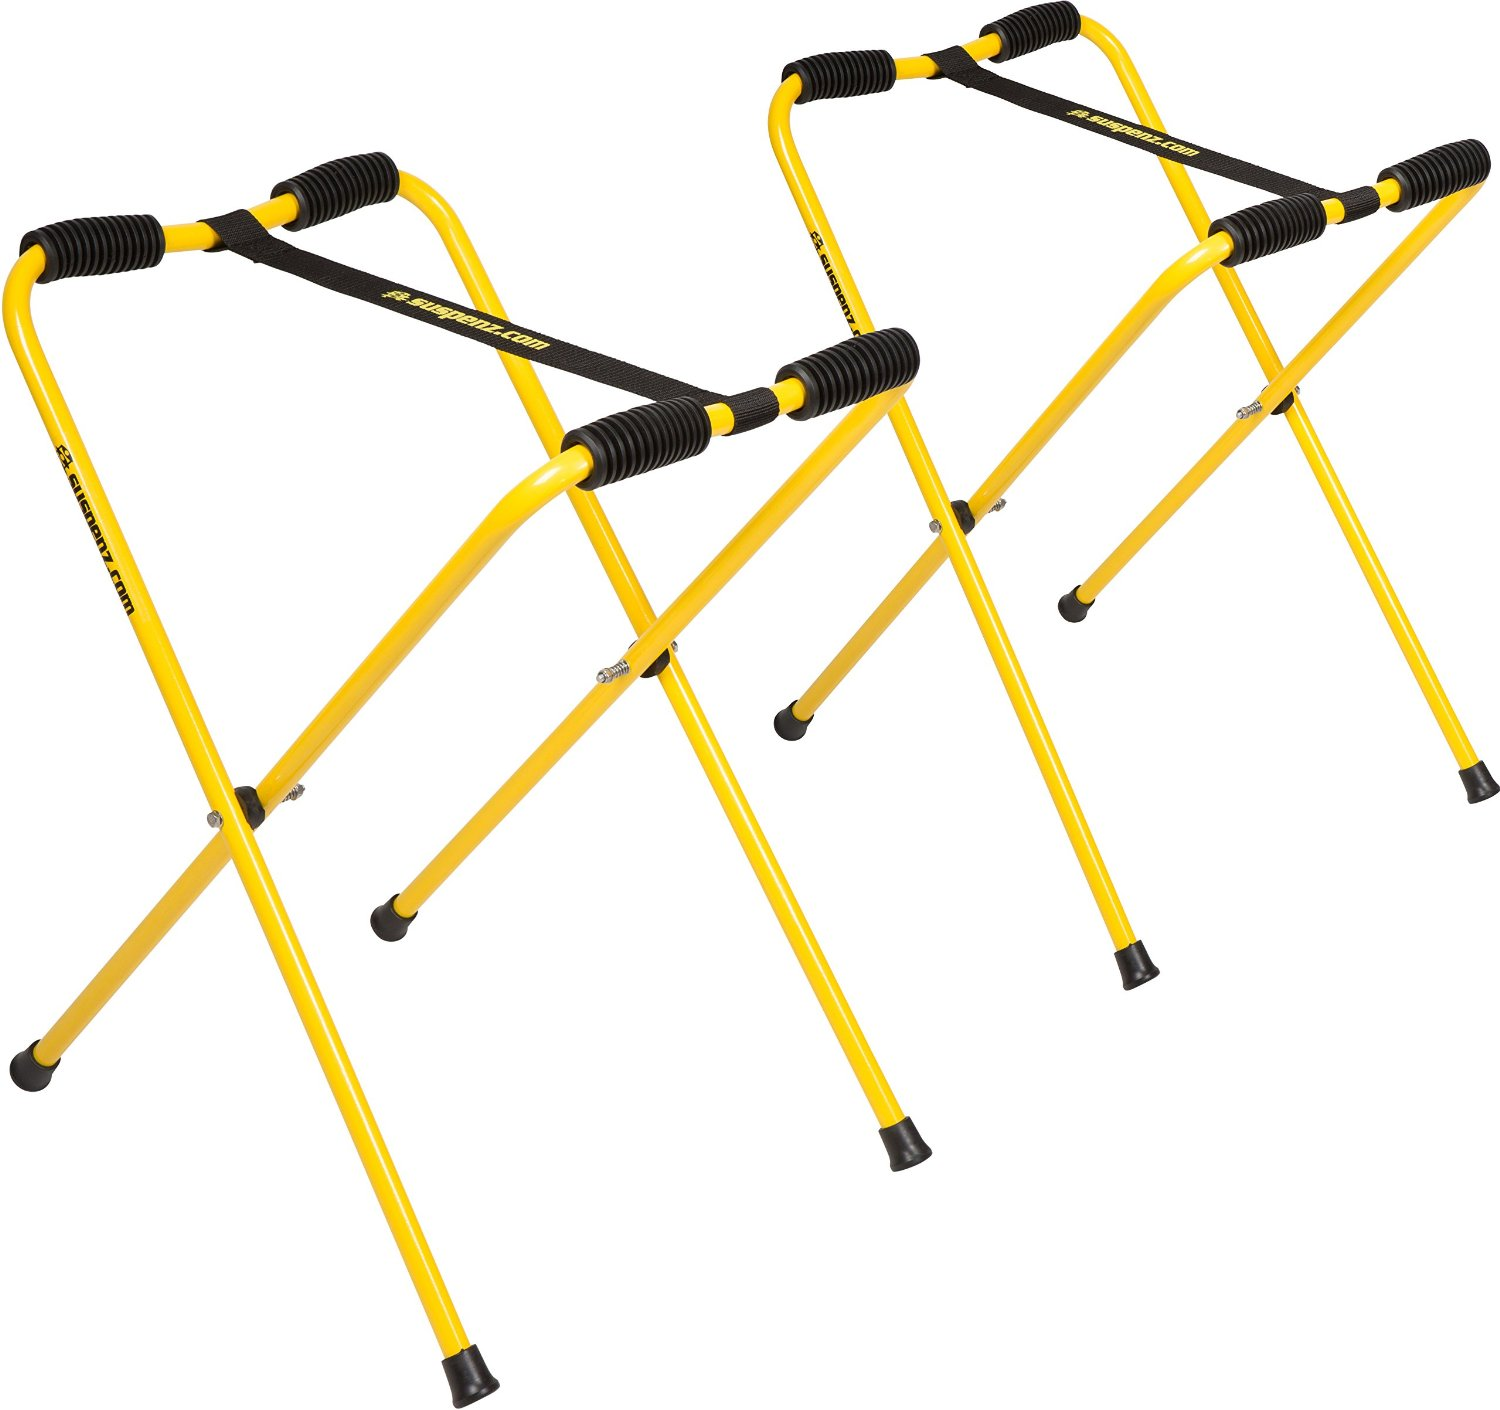 Suspense Universal Portable Boat Stands Large Sup On